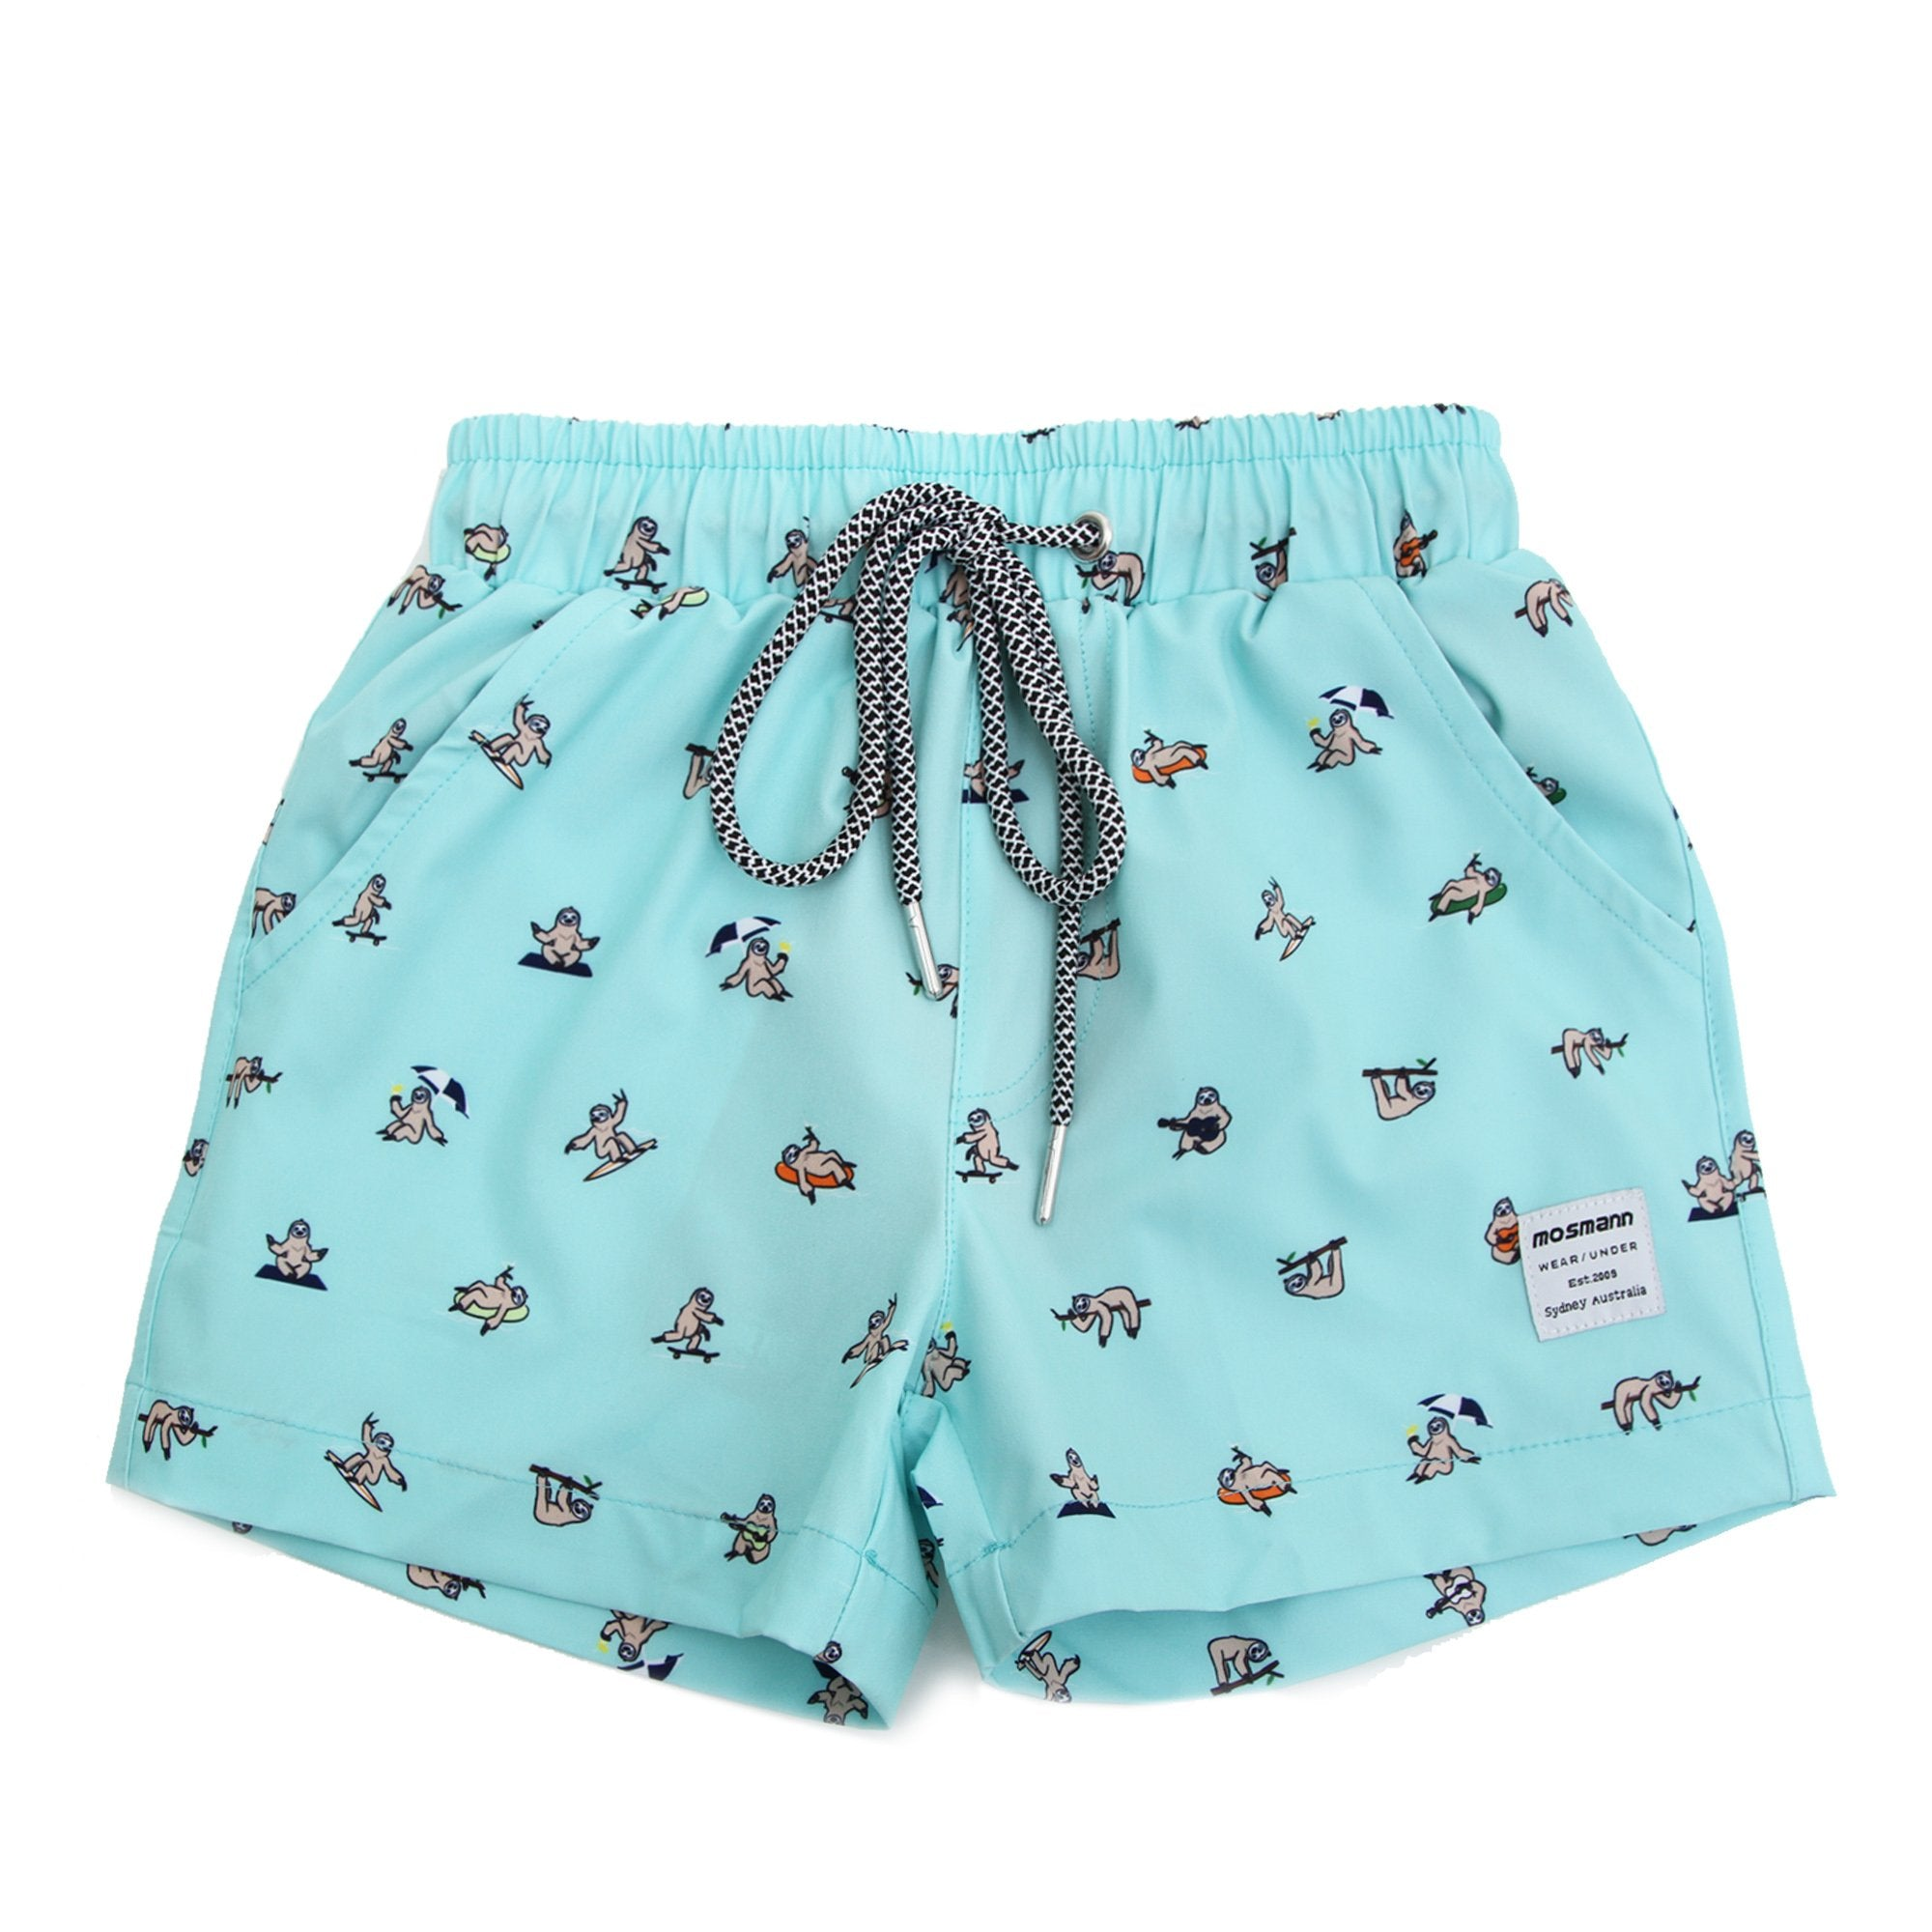 Boy's swim shorts with animal print